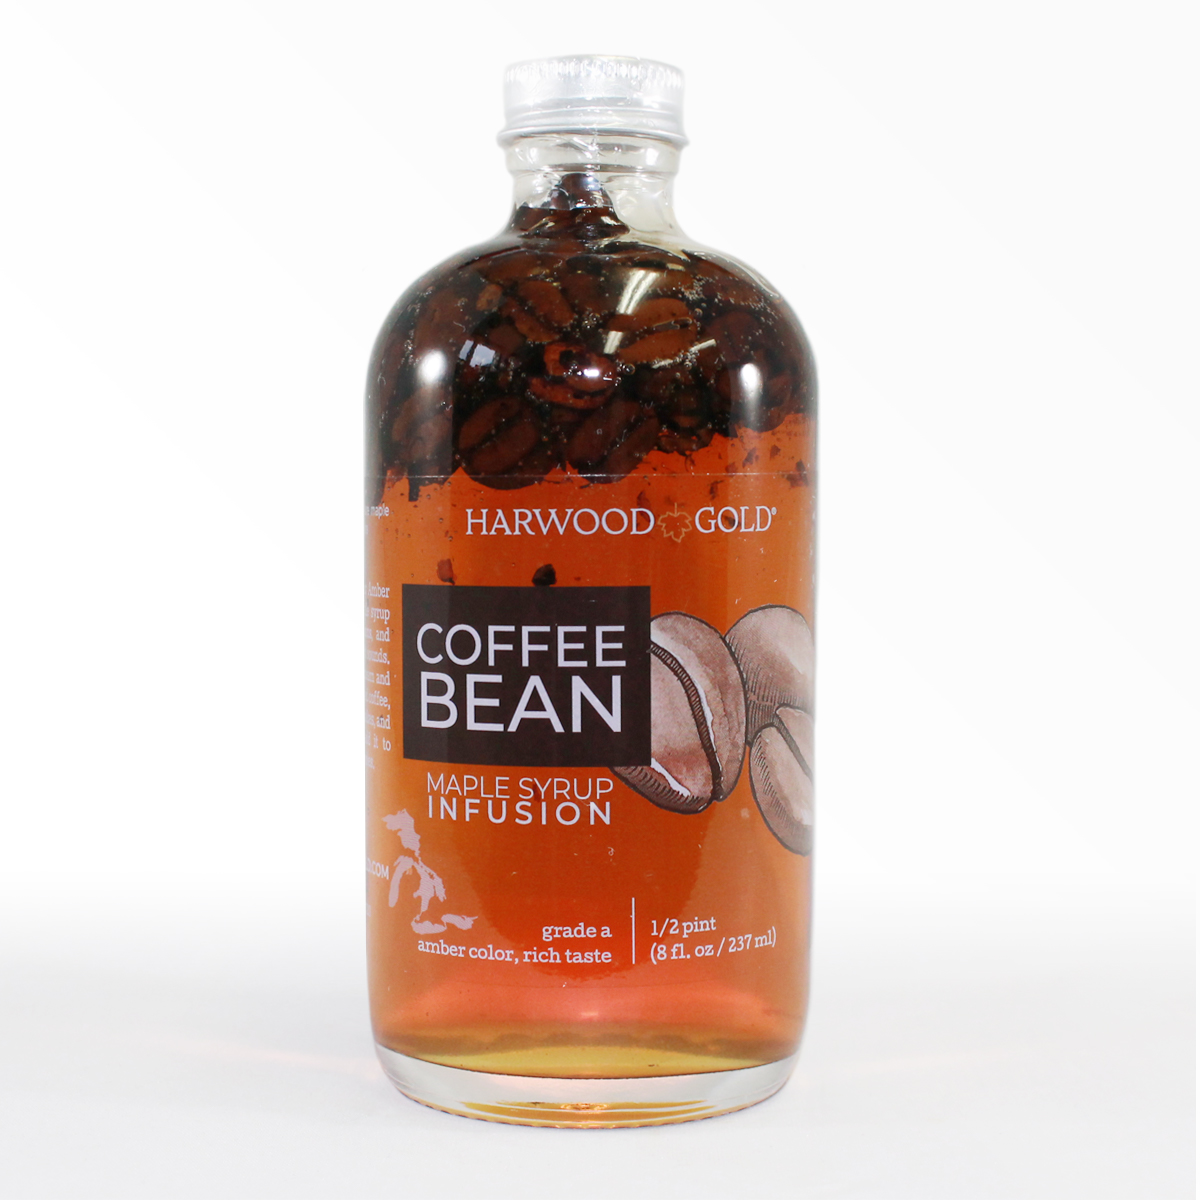 Harwood Gold Coffee Bean Maple Syrup Infusion